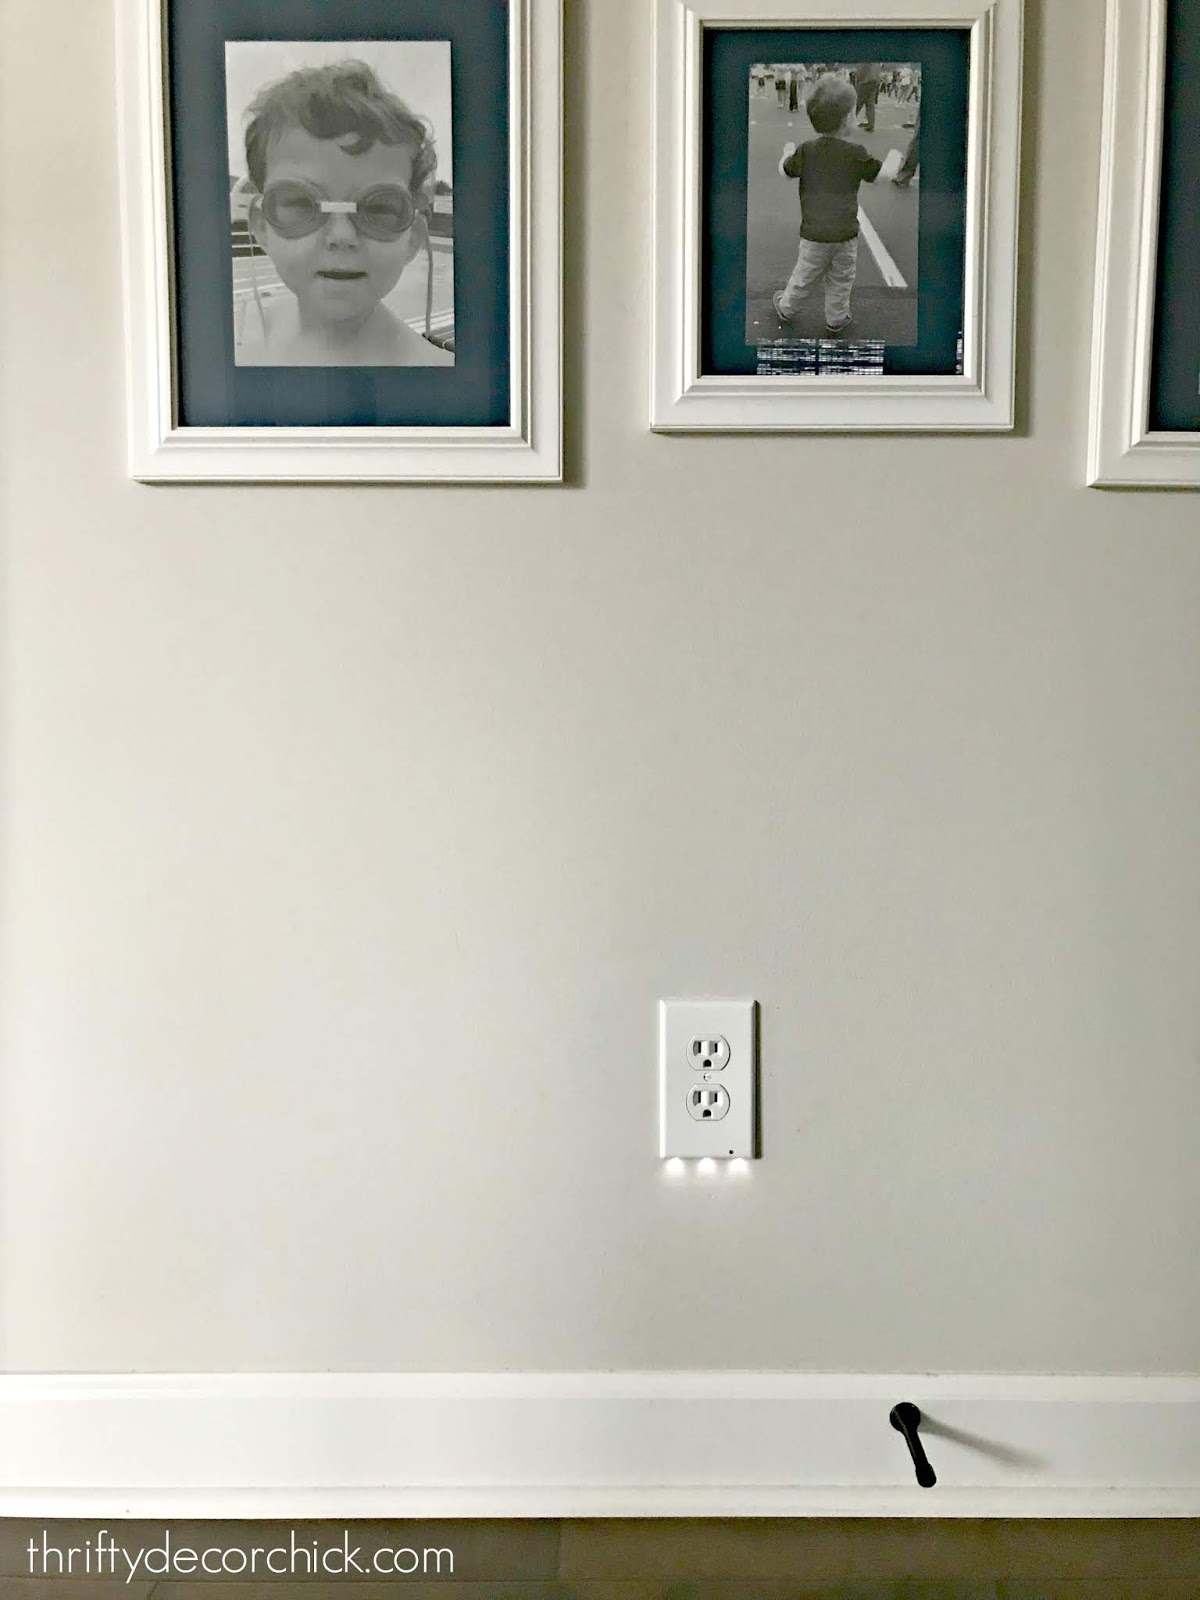 Light sensitive night lights on outlet